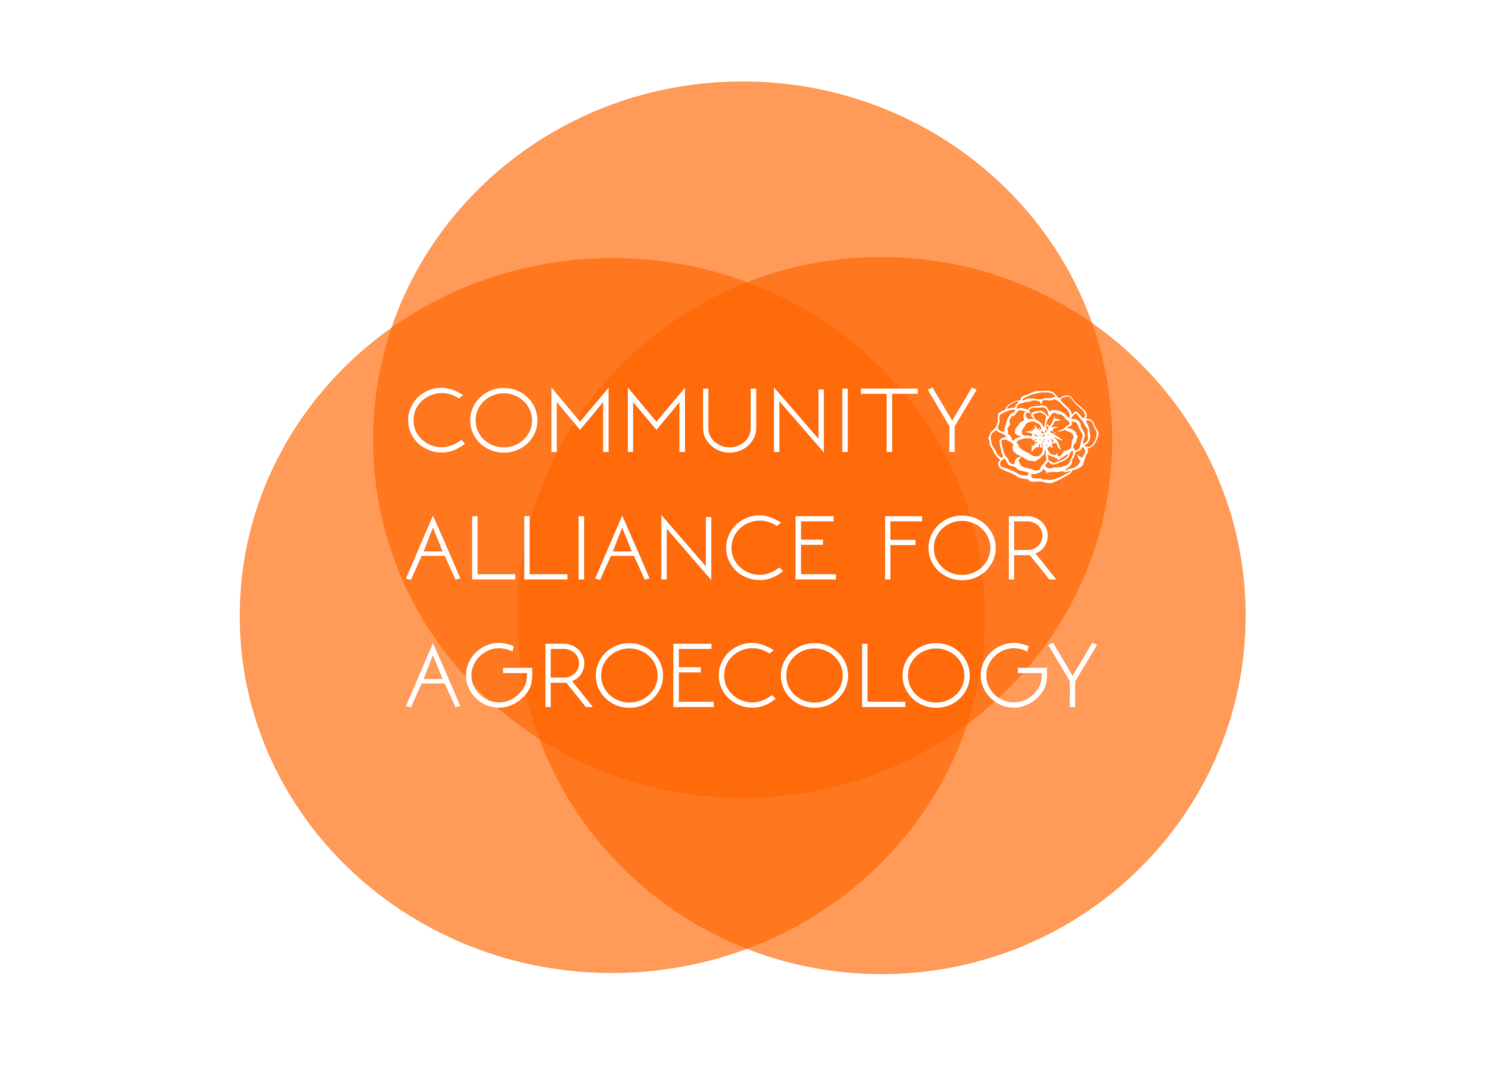 Community Alliance for Agroecology